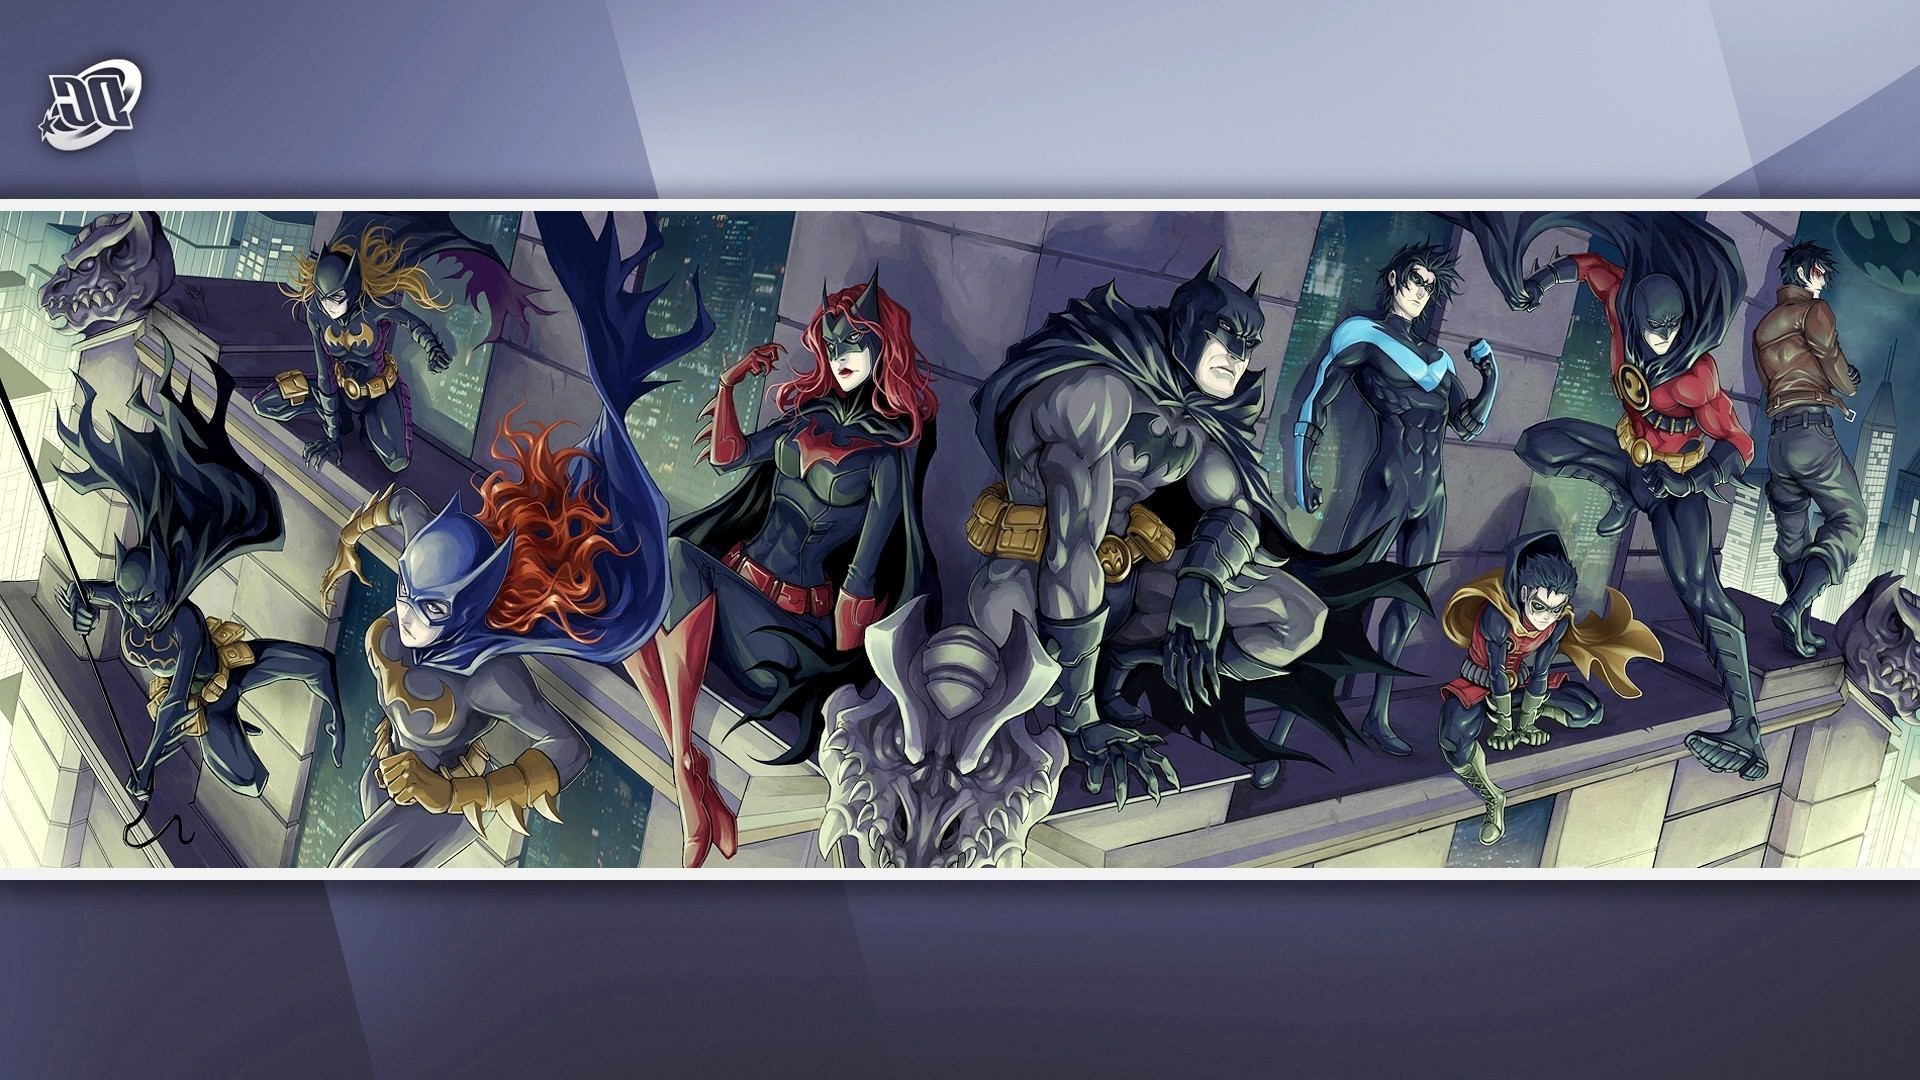 Res: 1920x1080, DC Comics, Batman, Nightwing, Batgirl, Batwoman, Red Robin, Red Hood, Robin  III Wallpapers HD / Desktop and Mobile Backgrounds